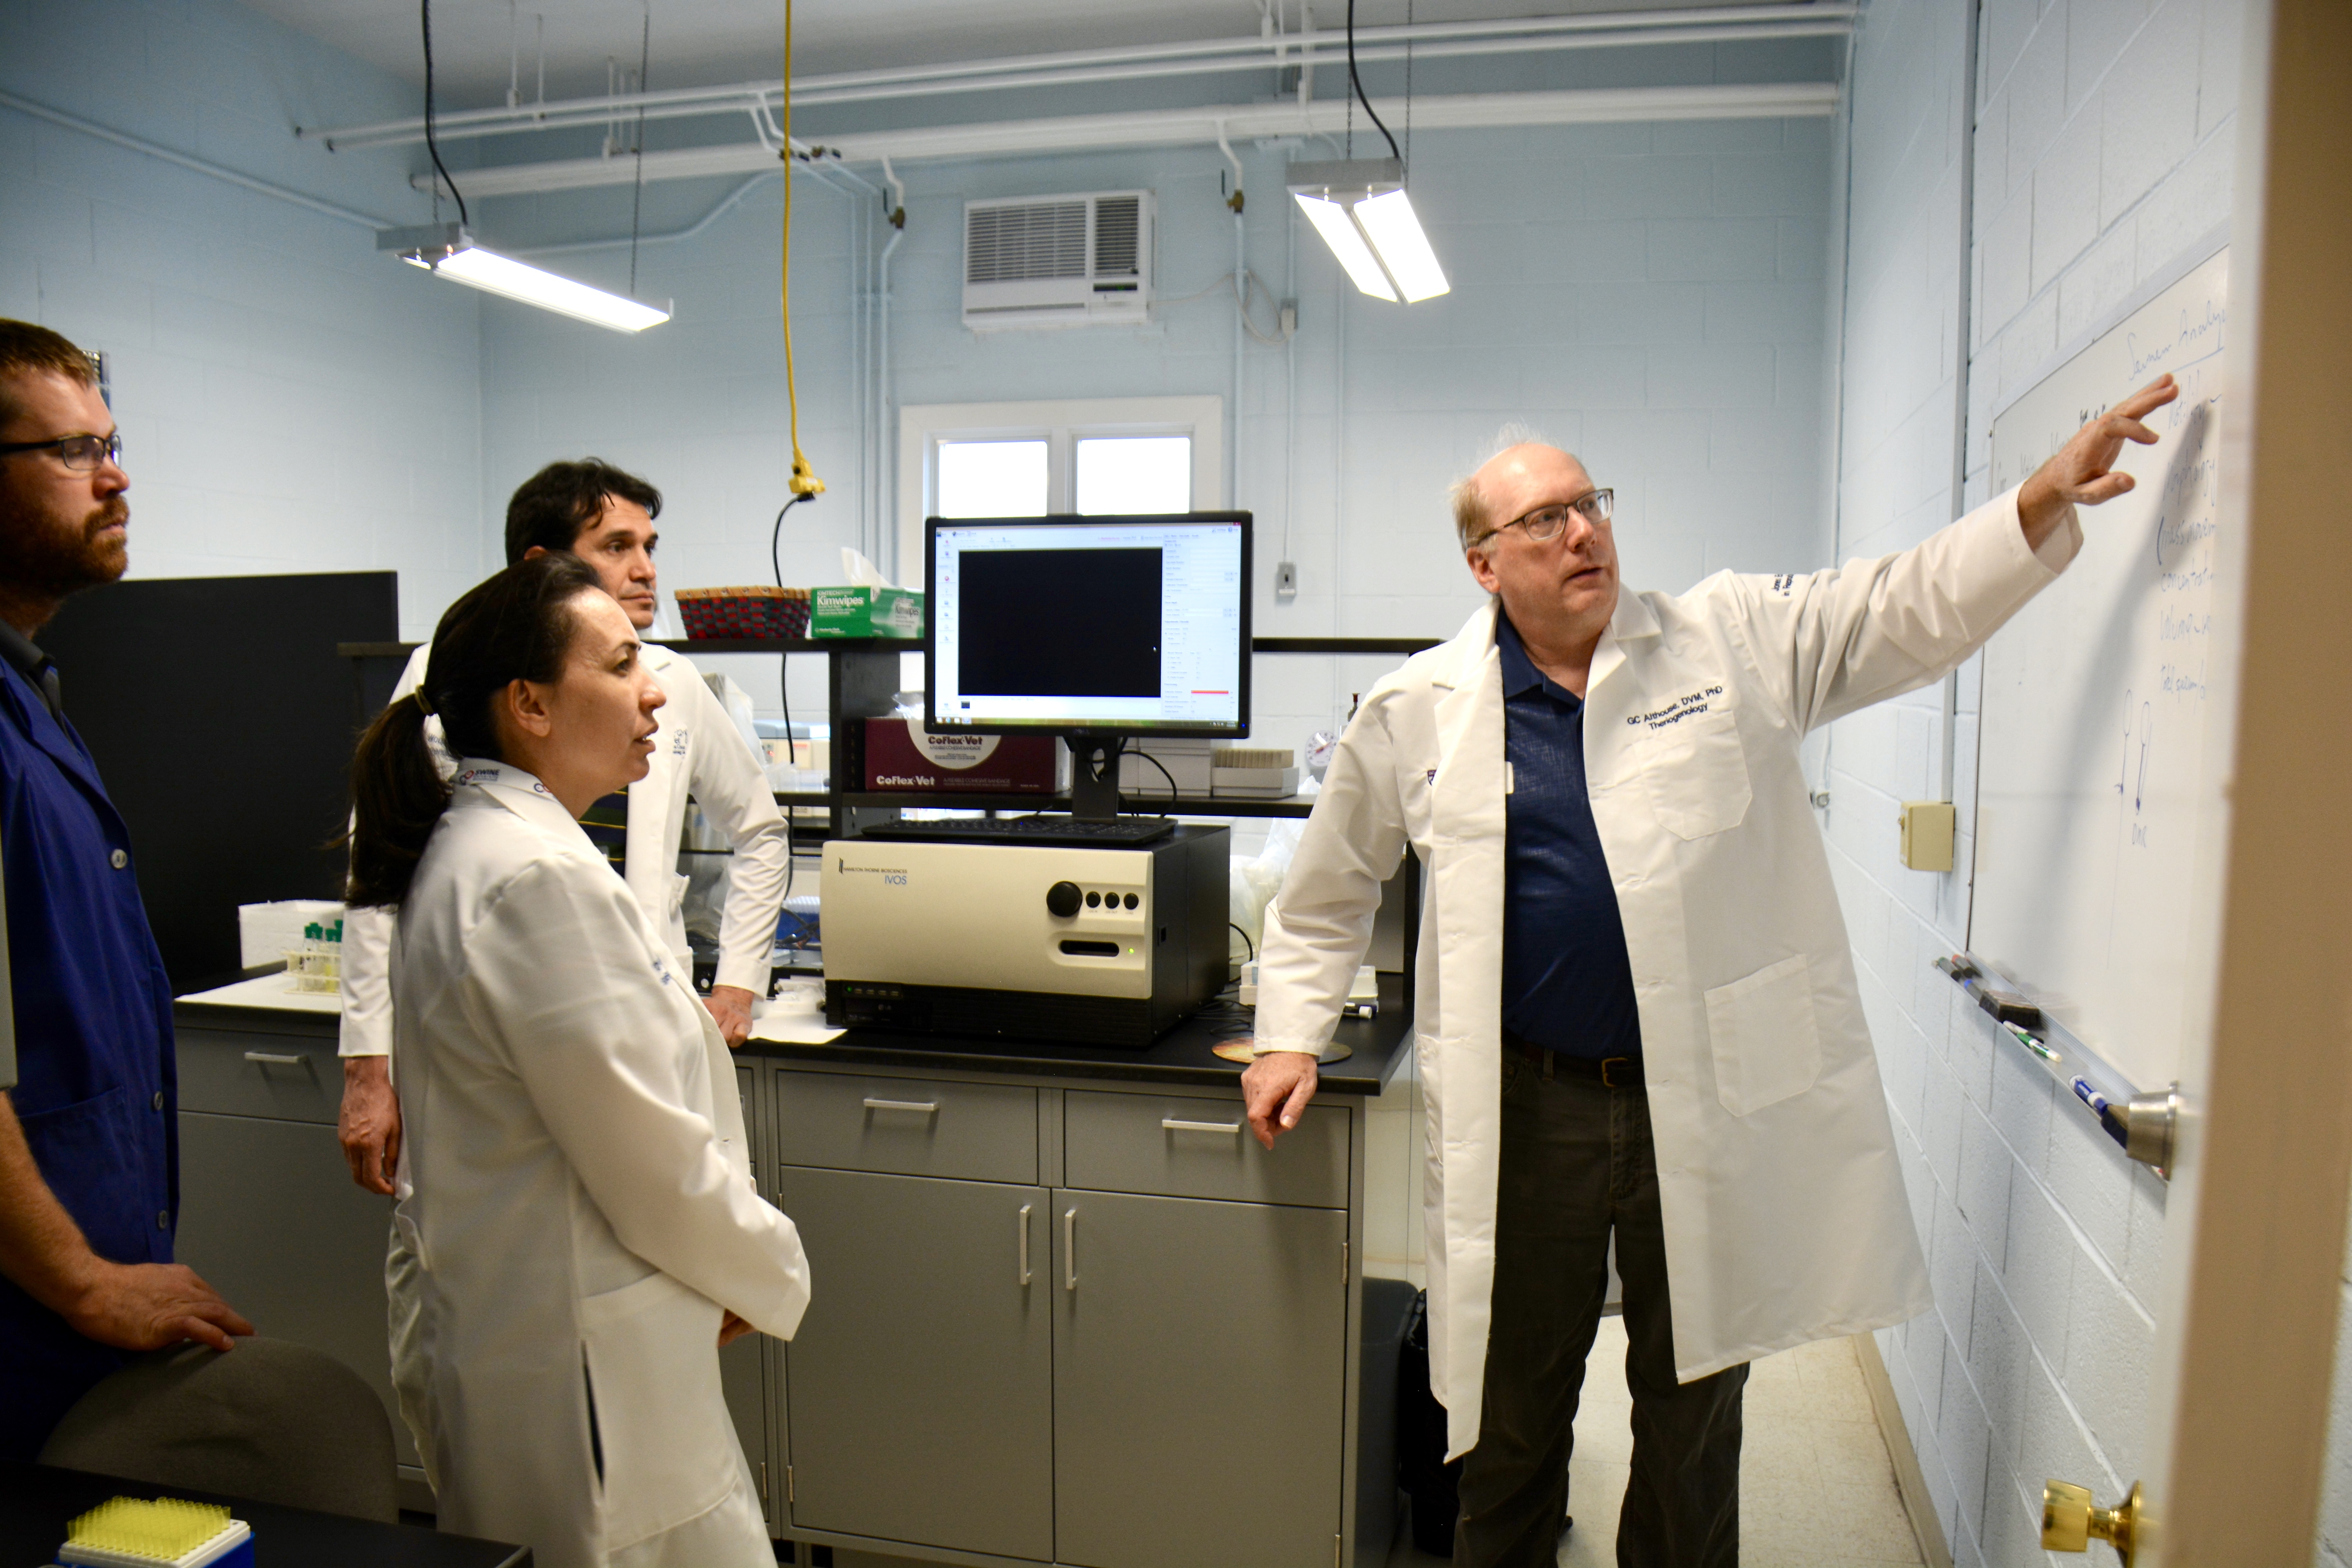 Dr. Gary Althouse explains key concepts to students during a hands-on lab.